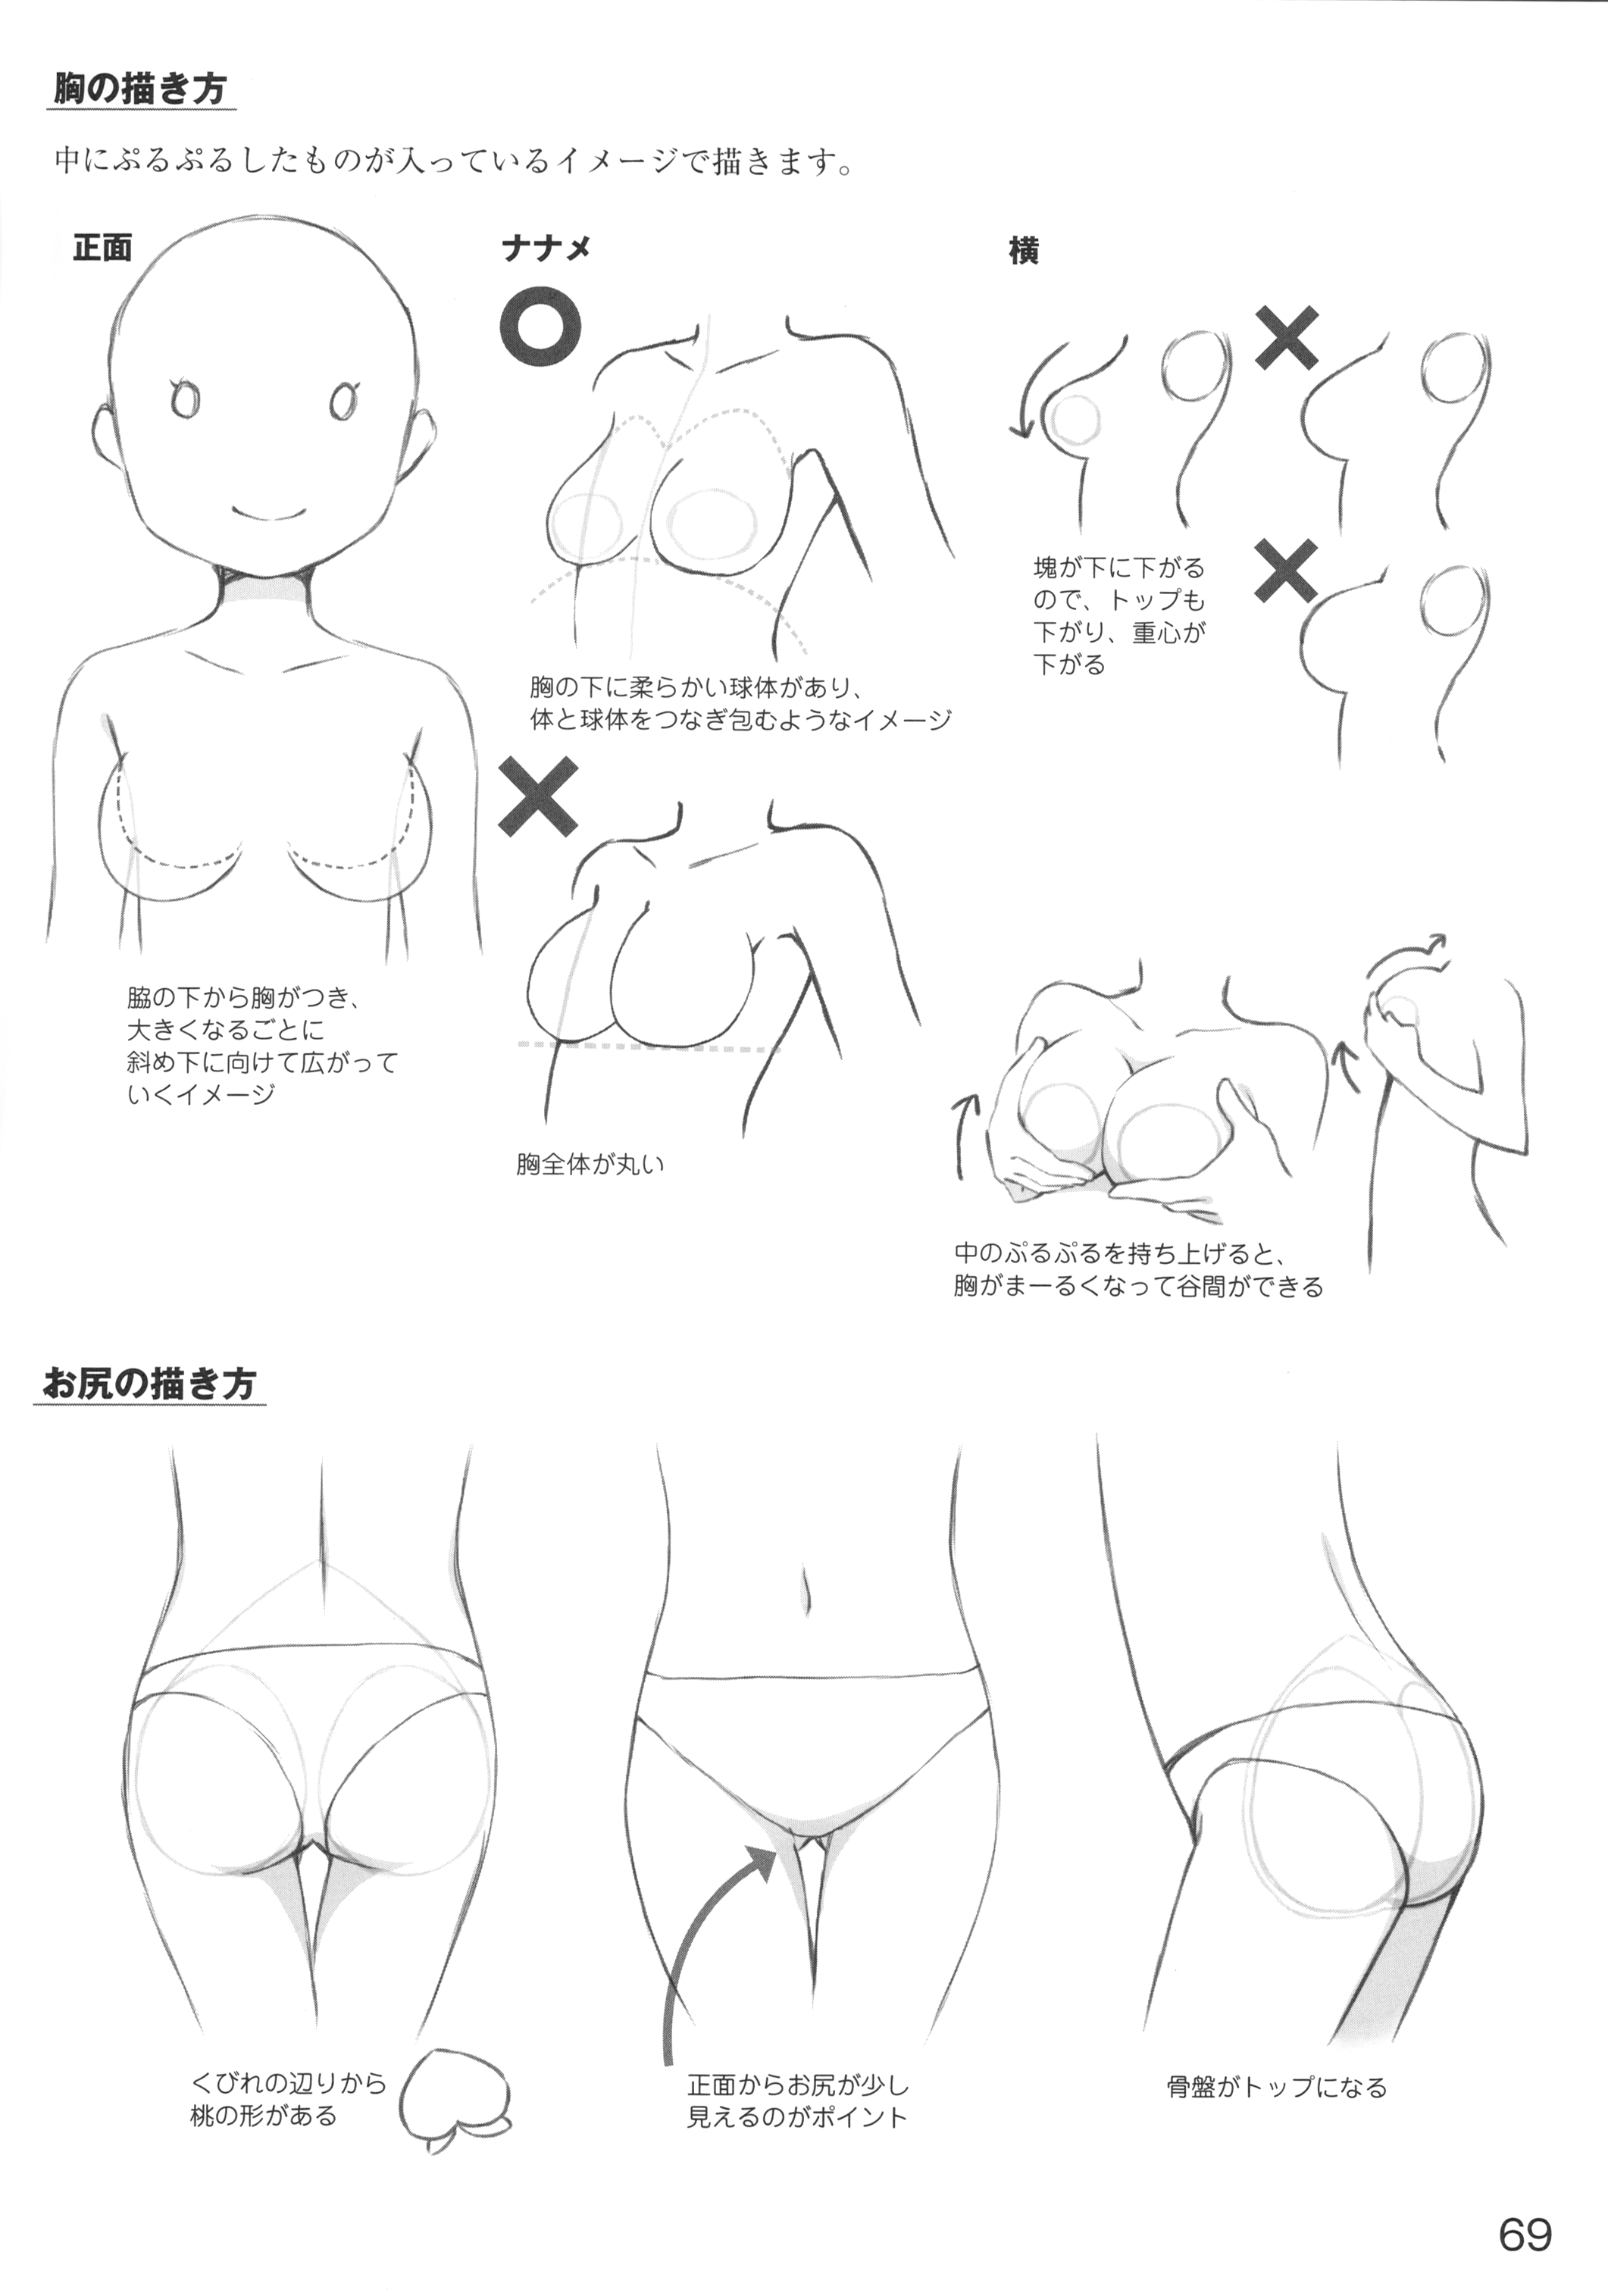 Pin by E-LIKE on ฝึก | Pinterest | Drawings, Anatomy and Tutorials